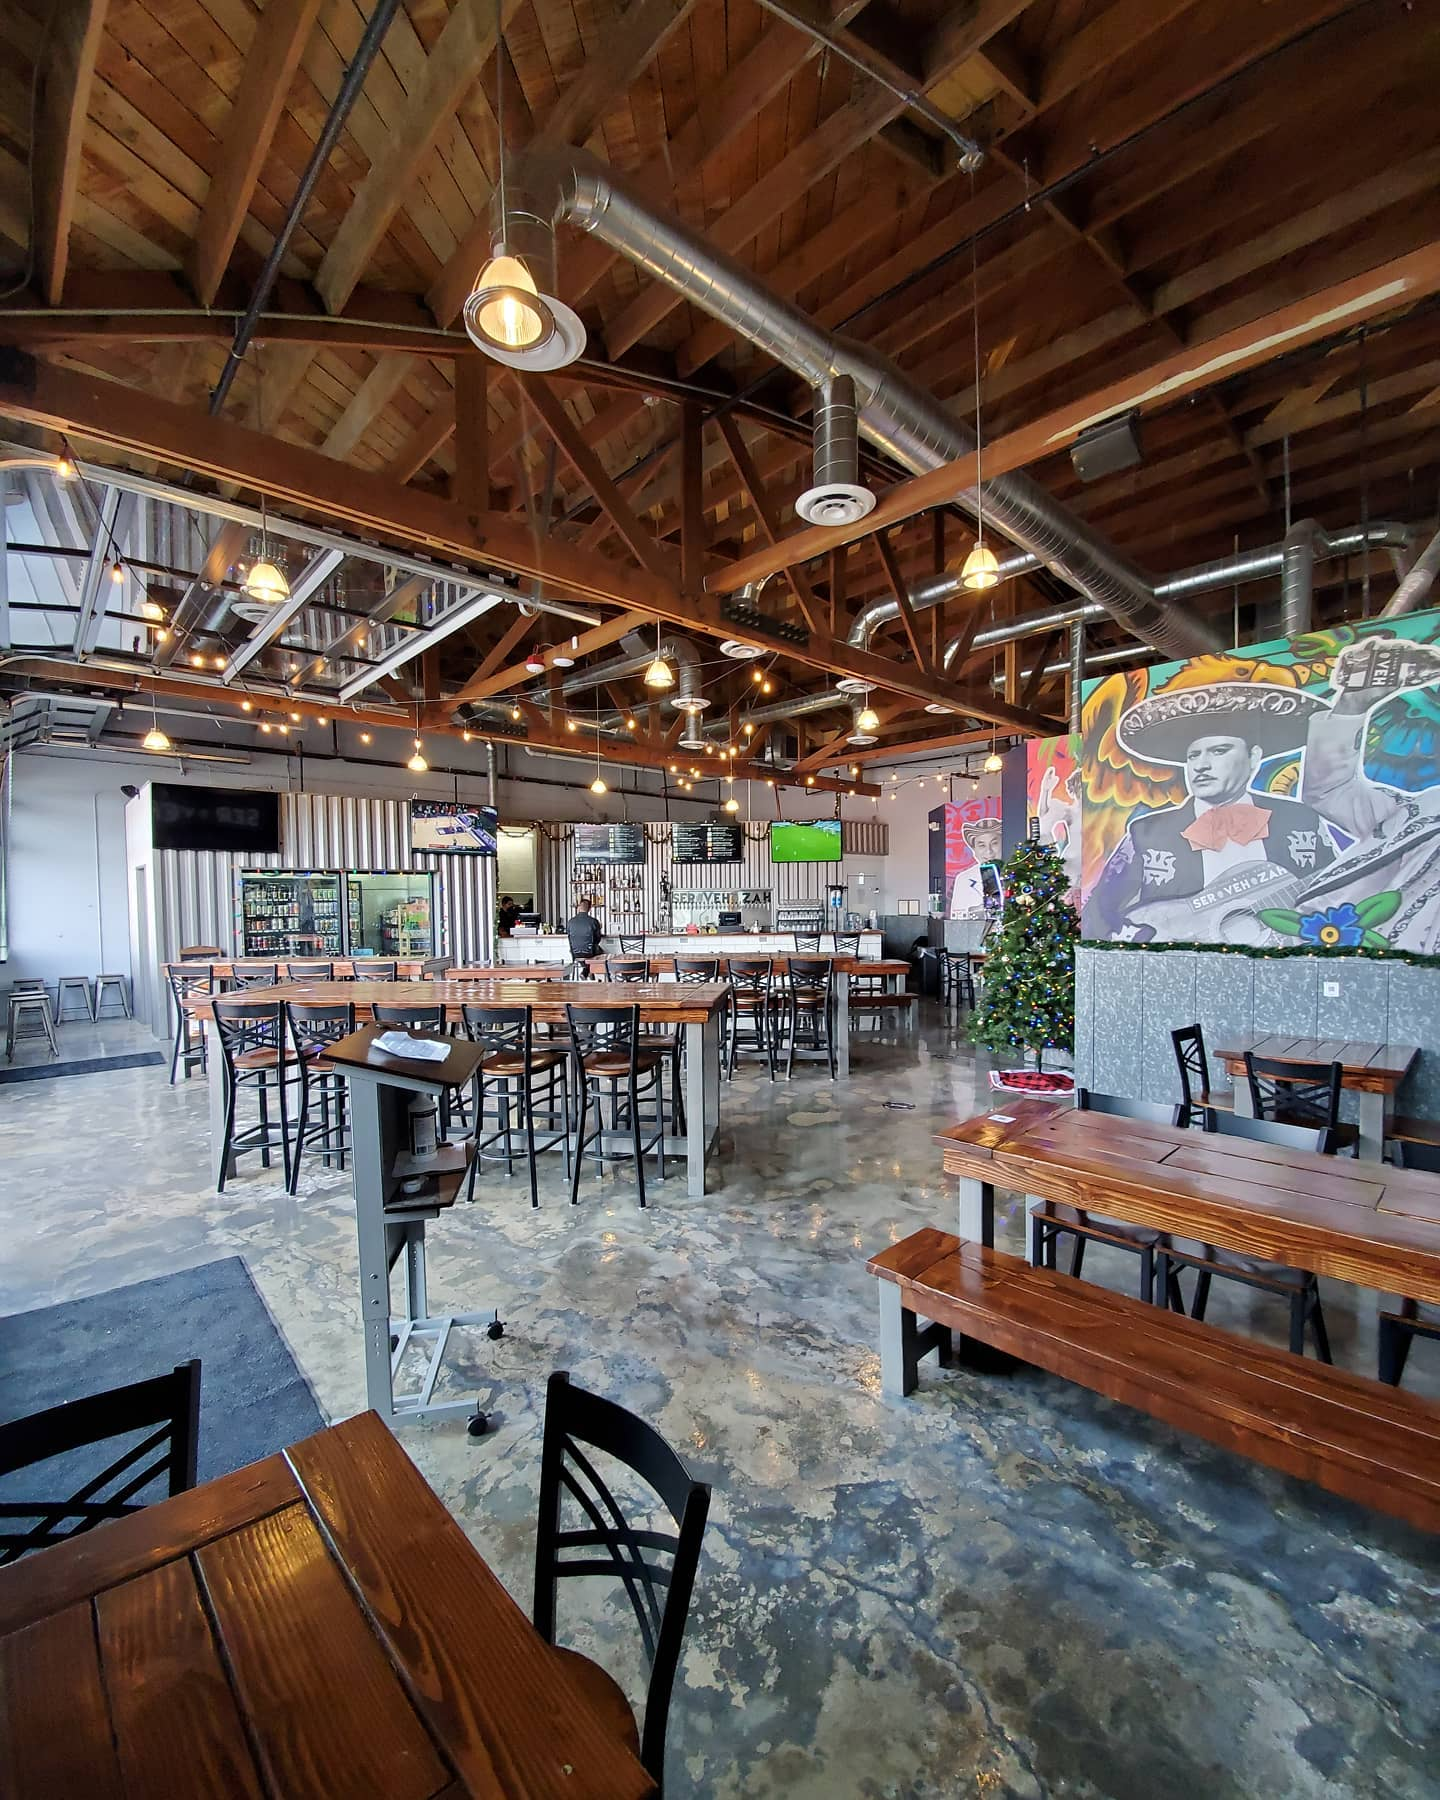 The interior of a taproom